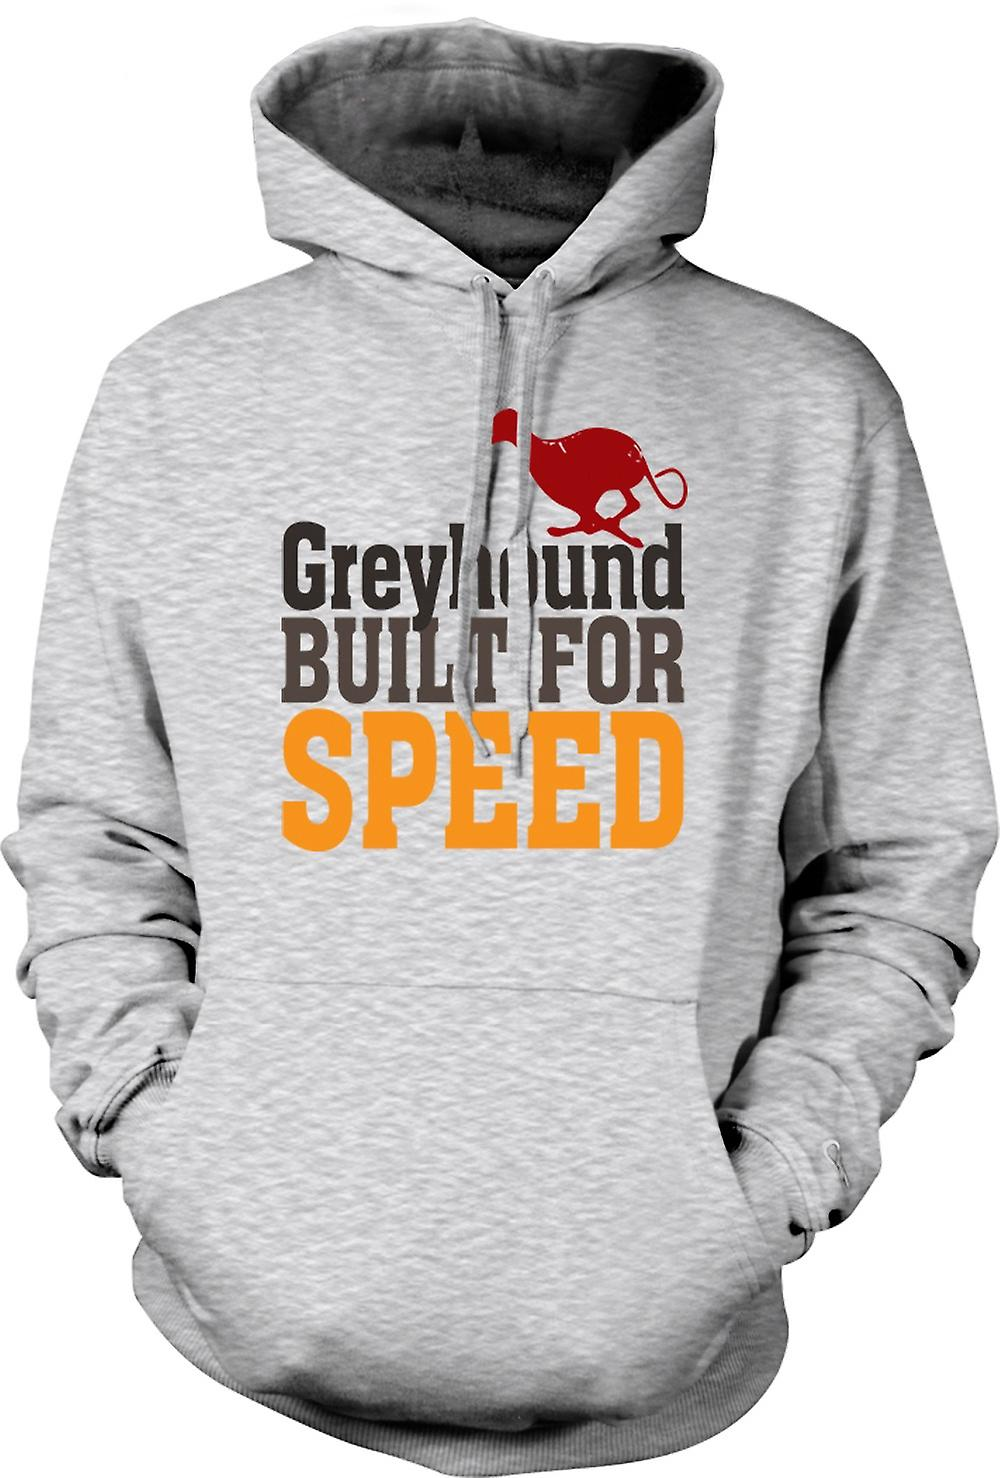 Mens Hoodie - Greyhound construit pour la vitesse